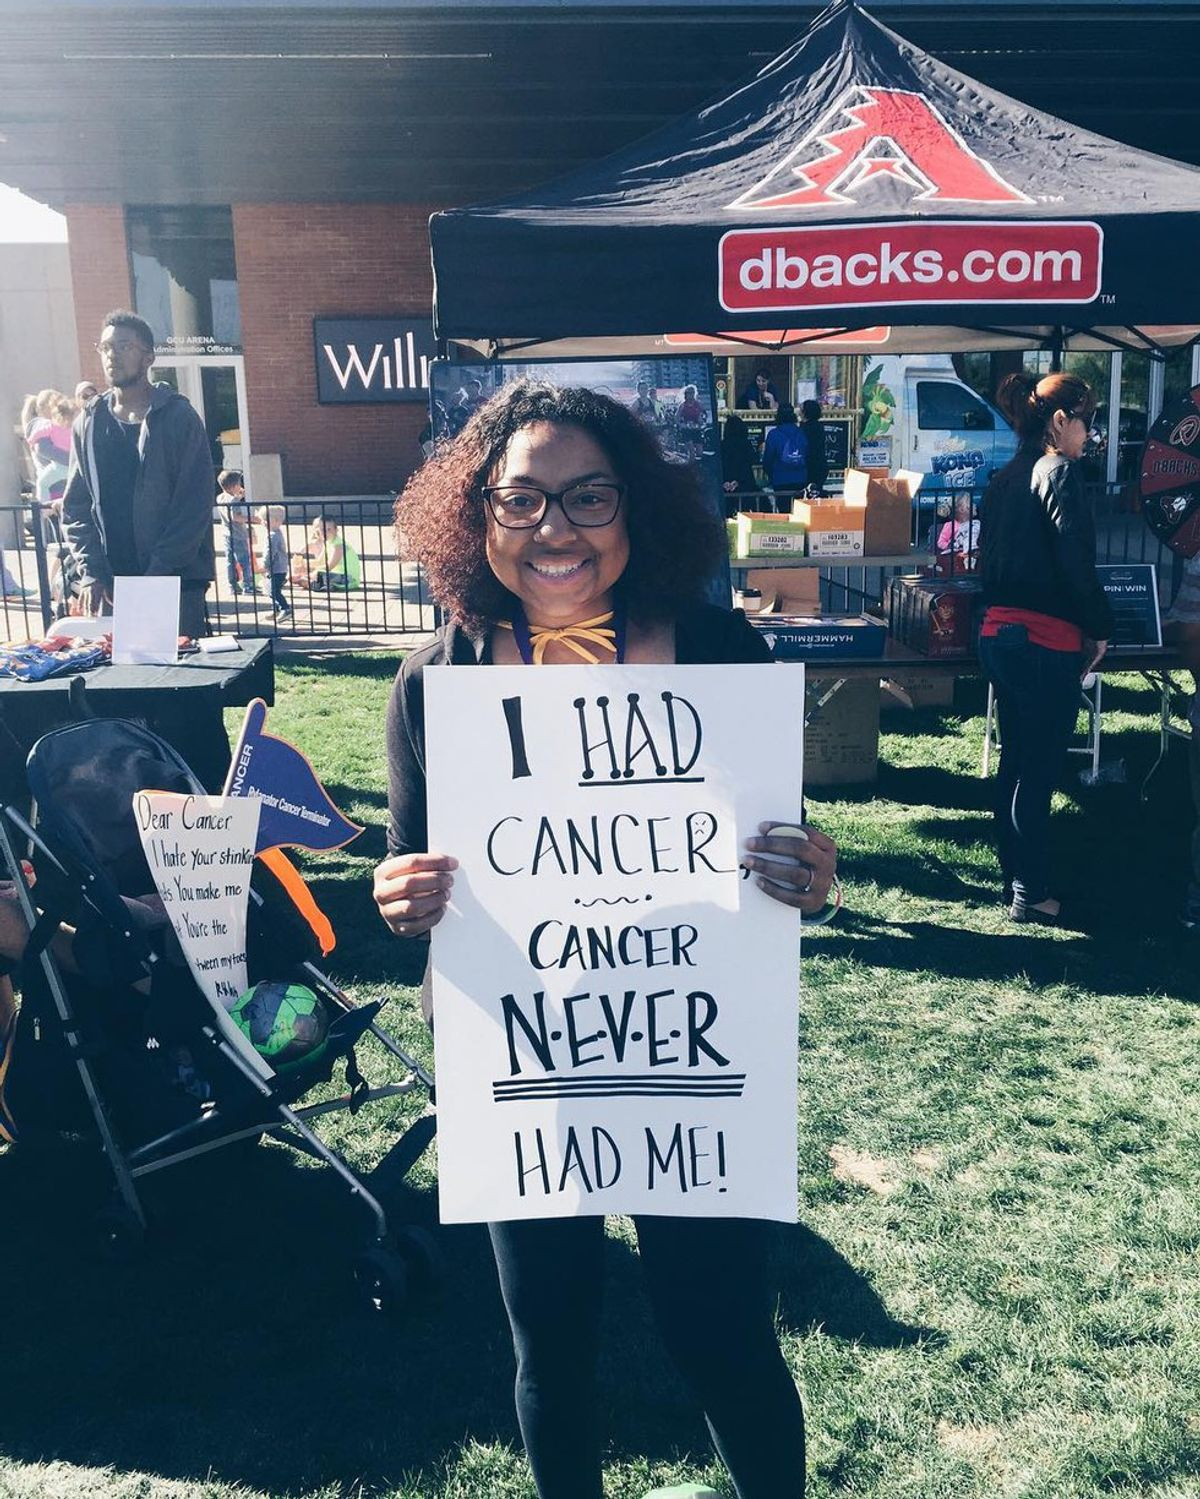 The Truth About Being A Cancer Survivor